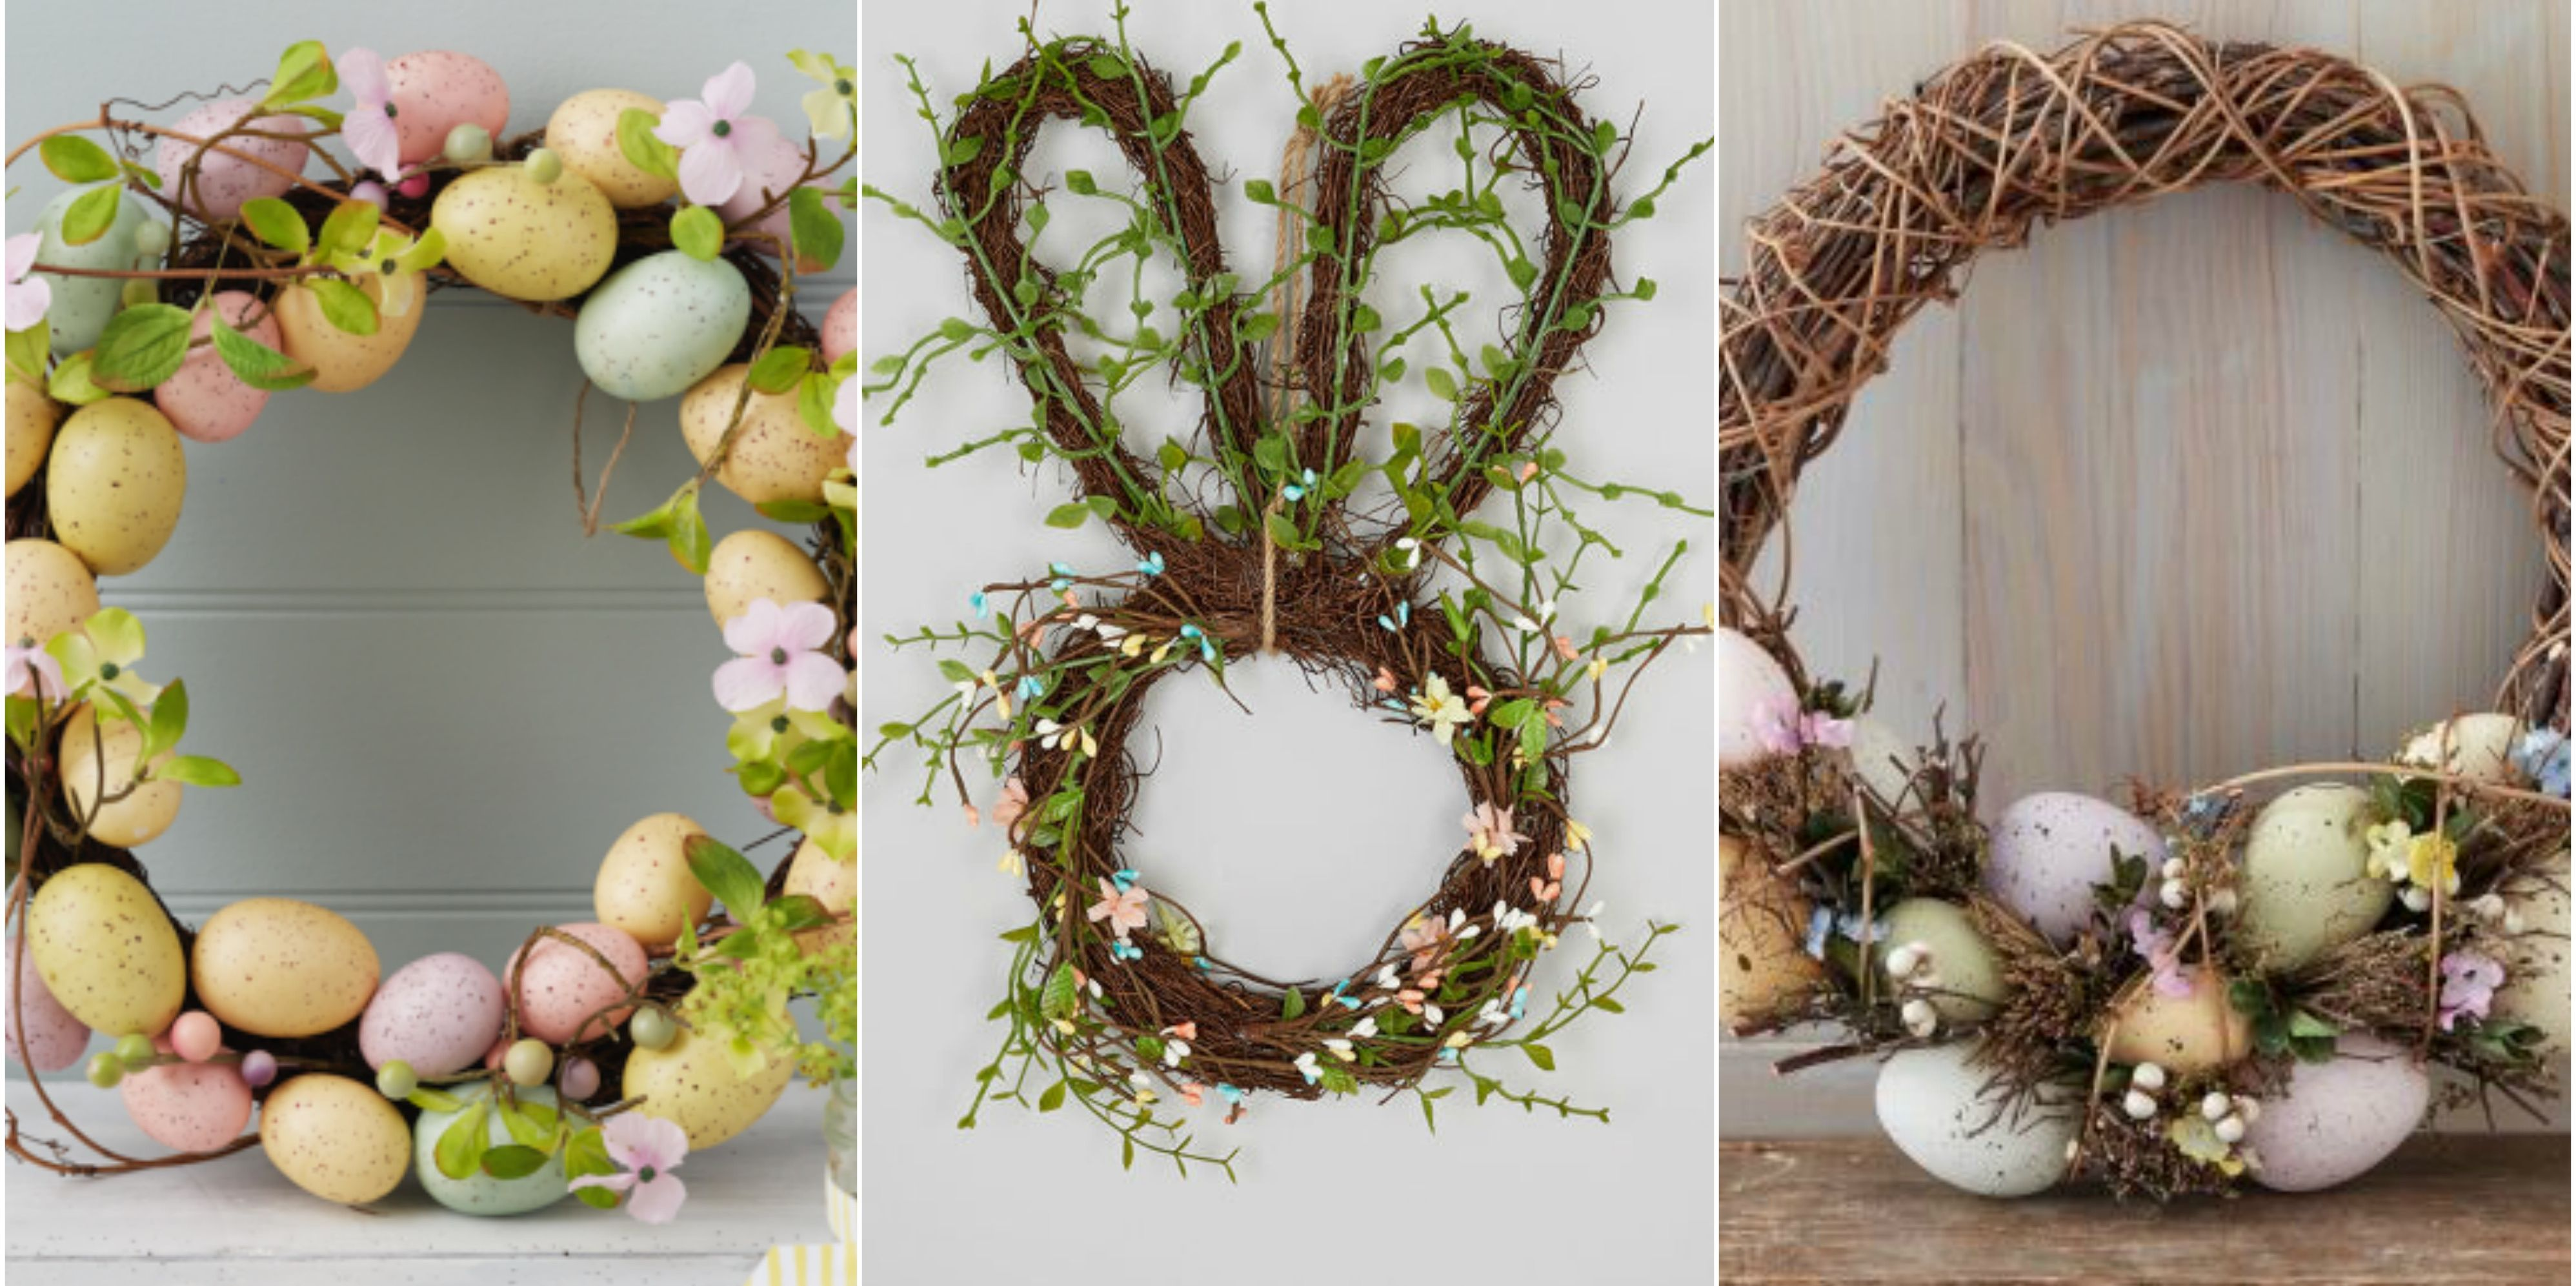 Decorative Easter wreaths